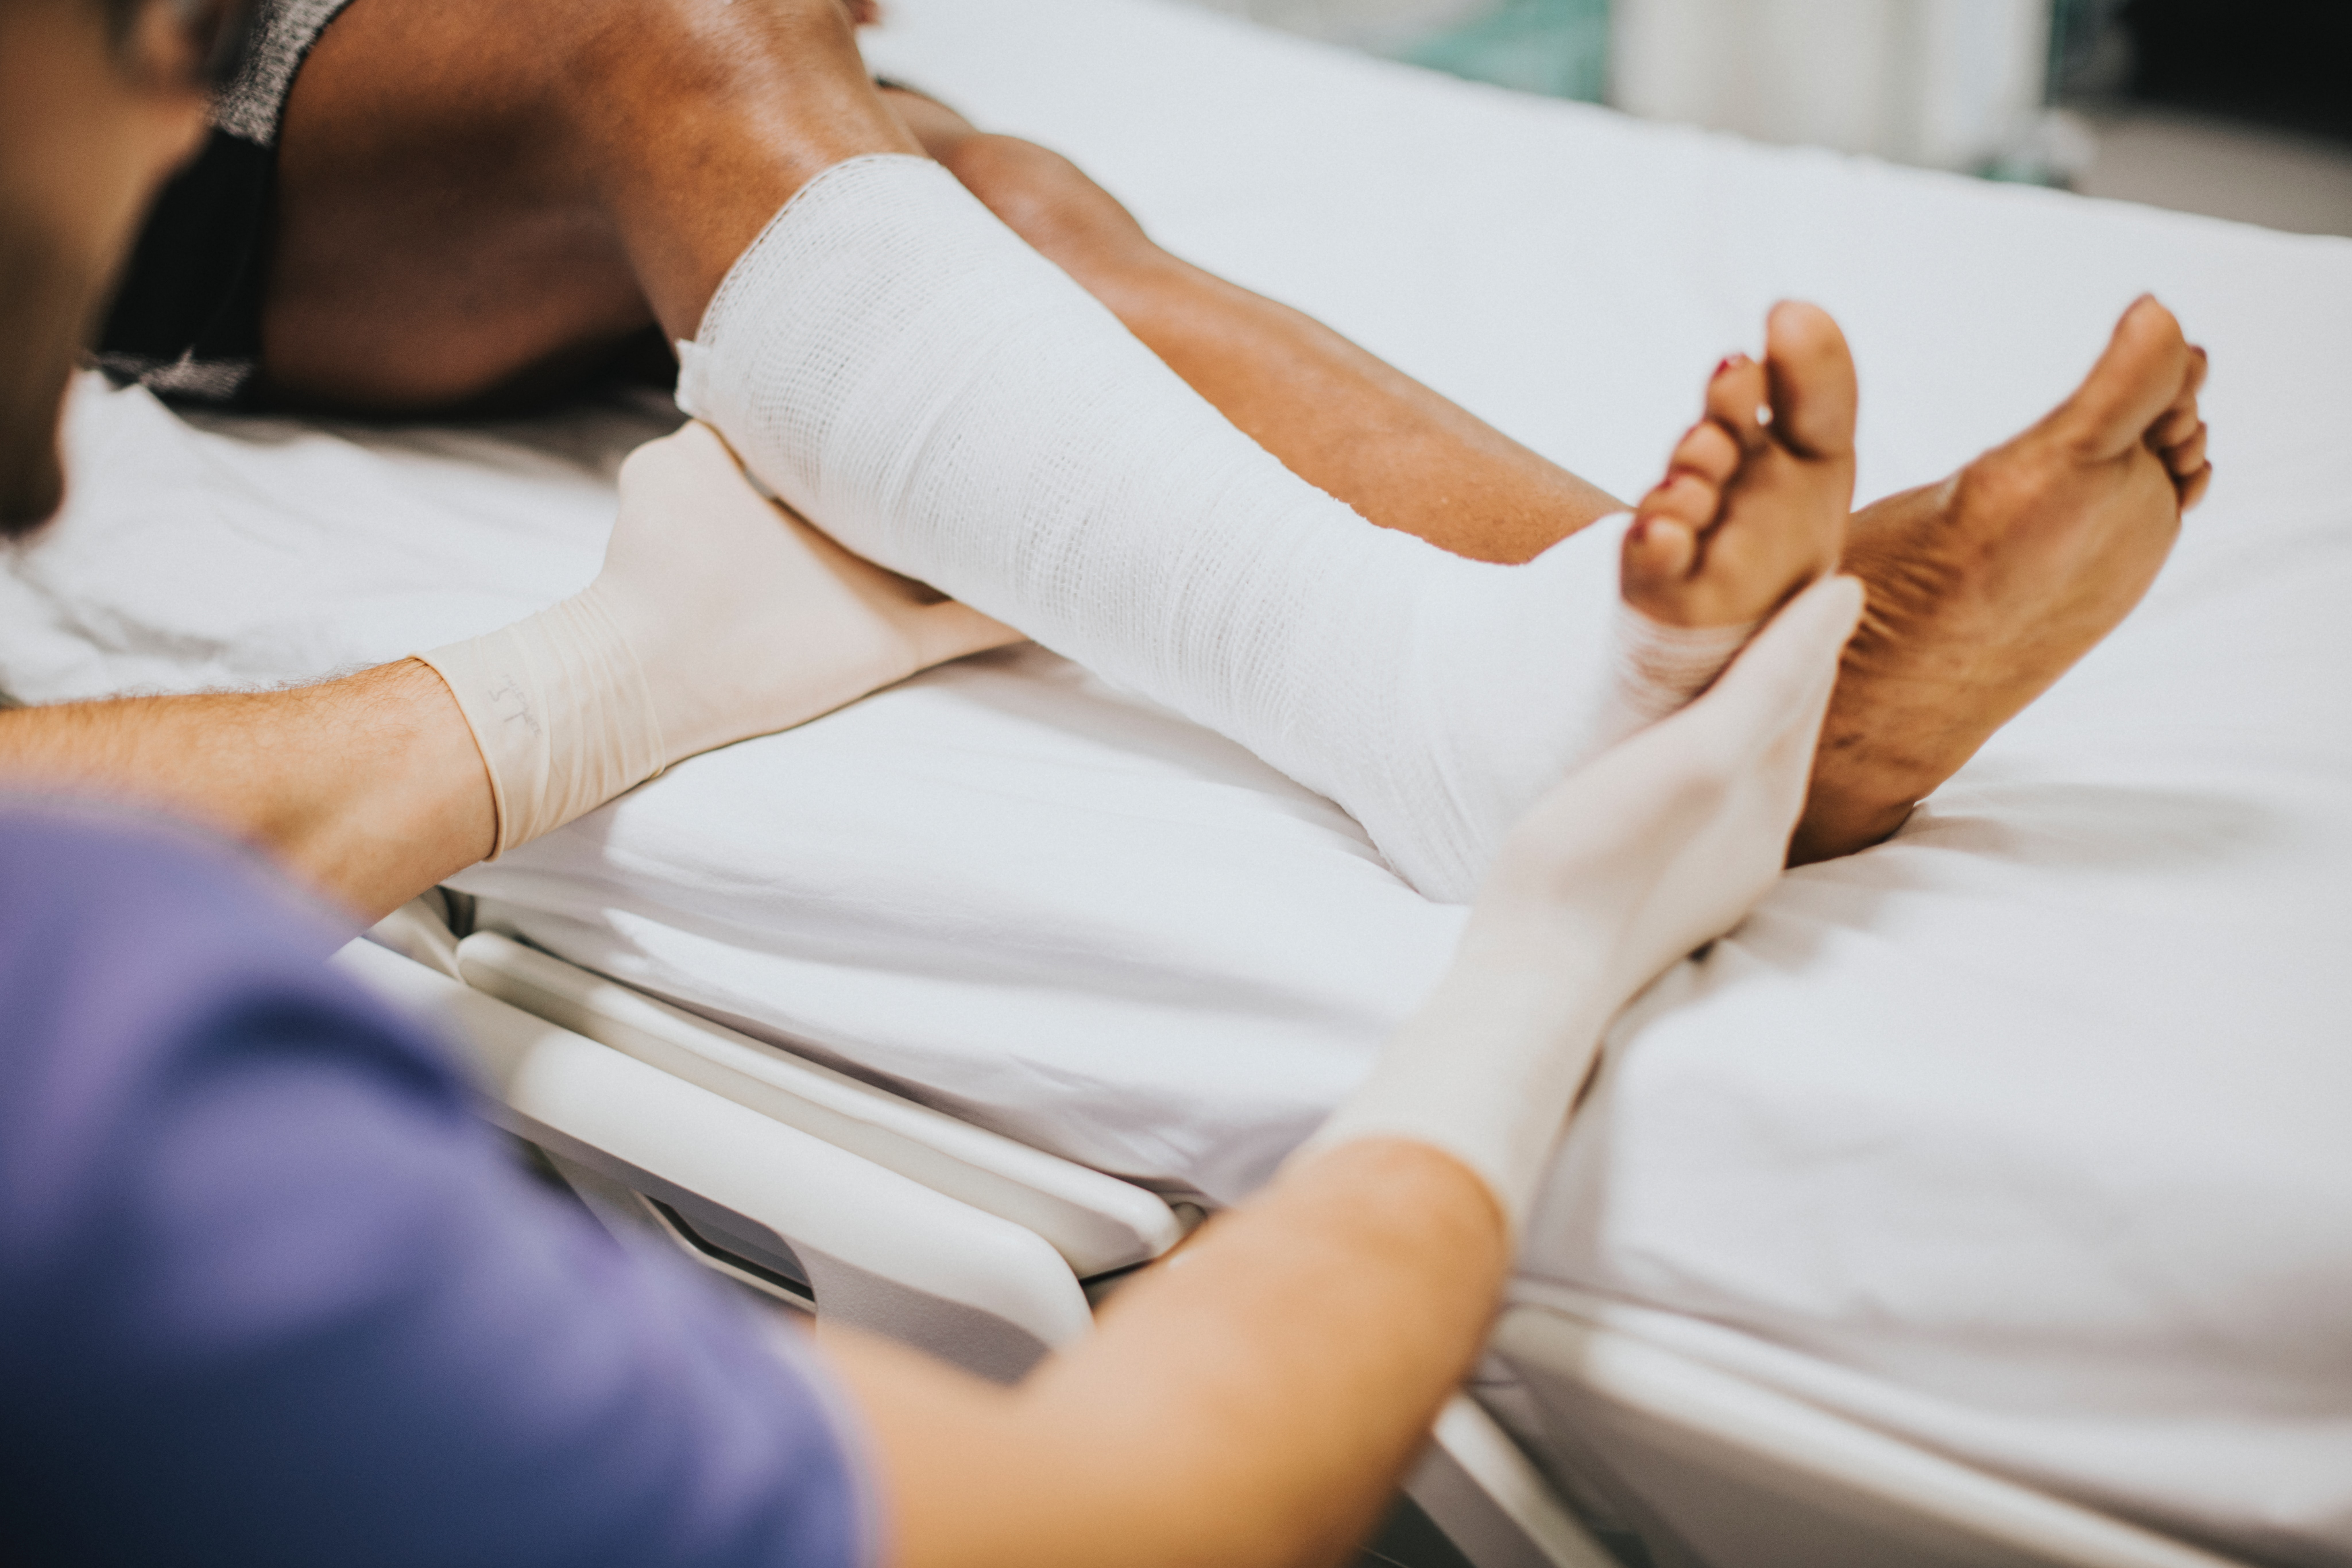 wrapped ankle medics hands